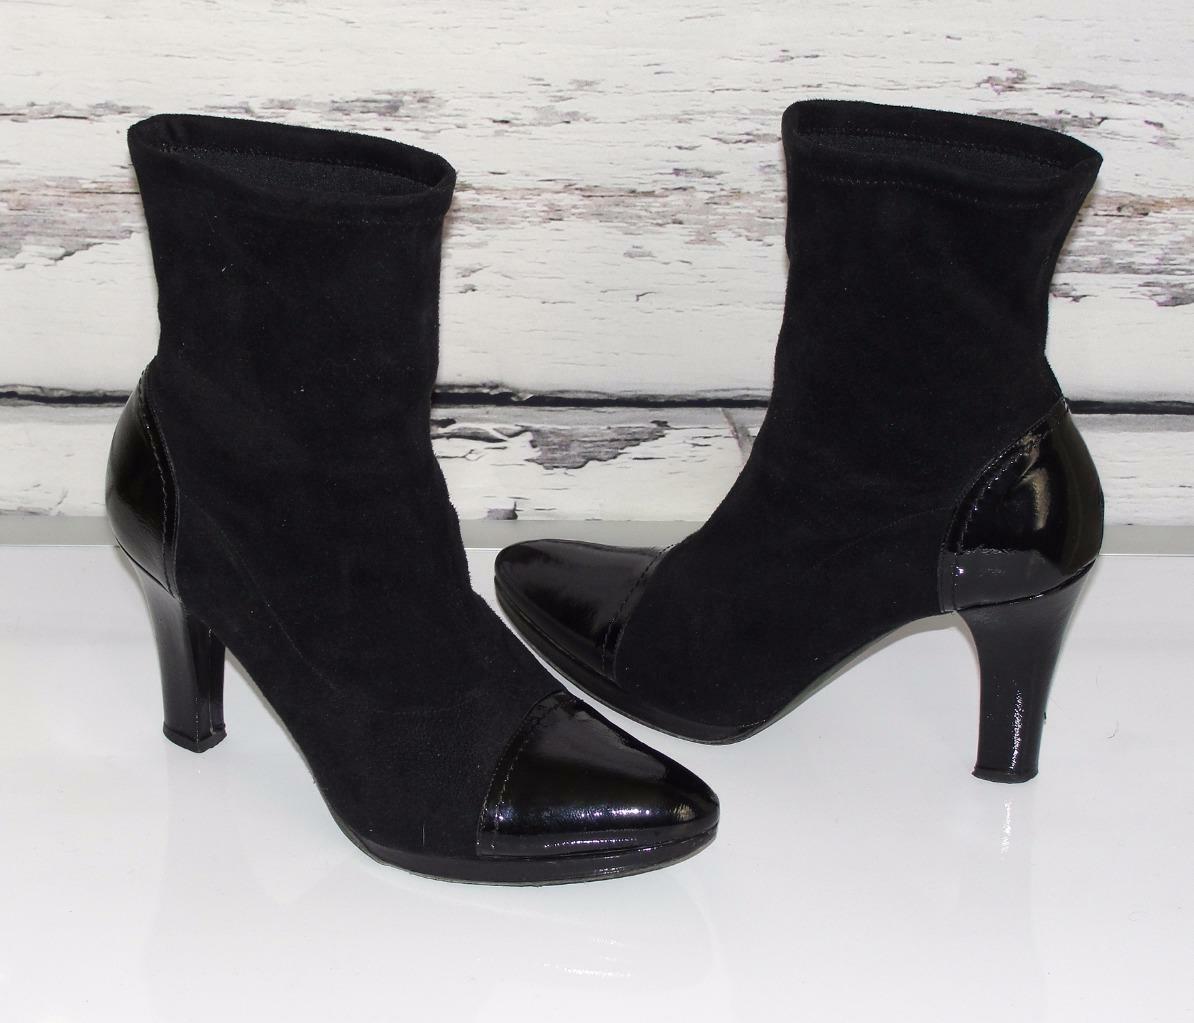 DONALD J PLINERPATENT LEATHER POINTED CAP TOESSTACKED HEELSANKLE BOOTS8.5